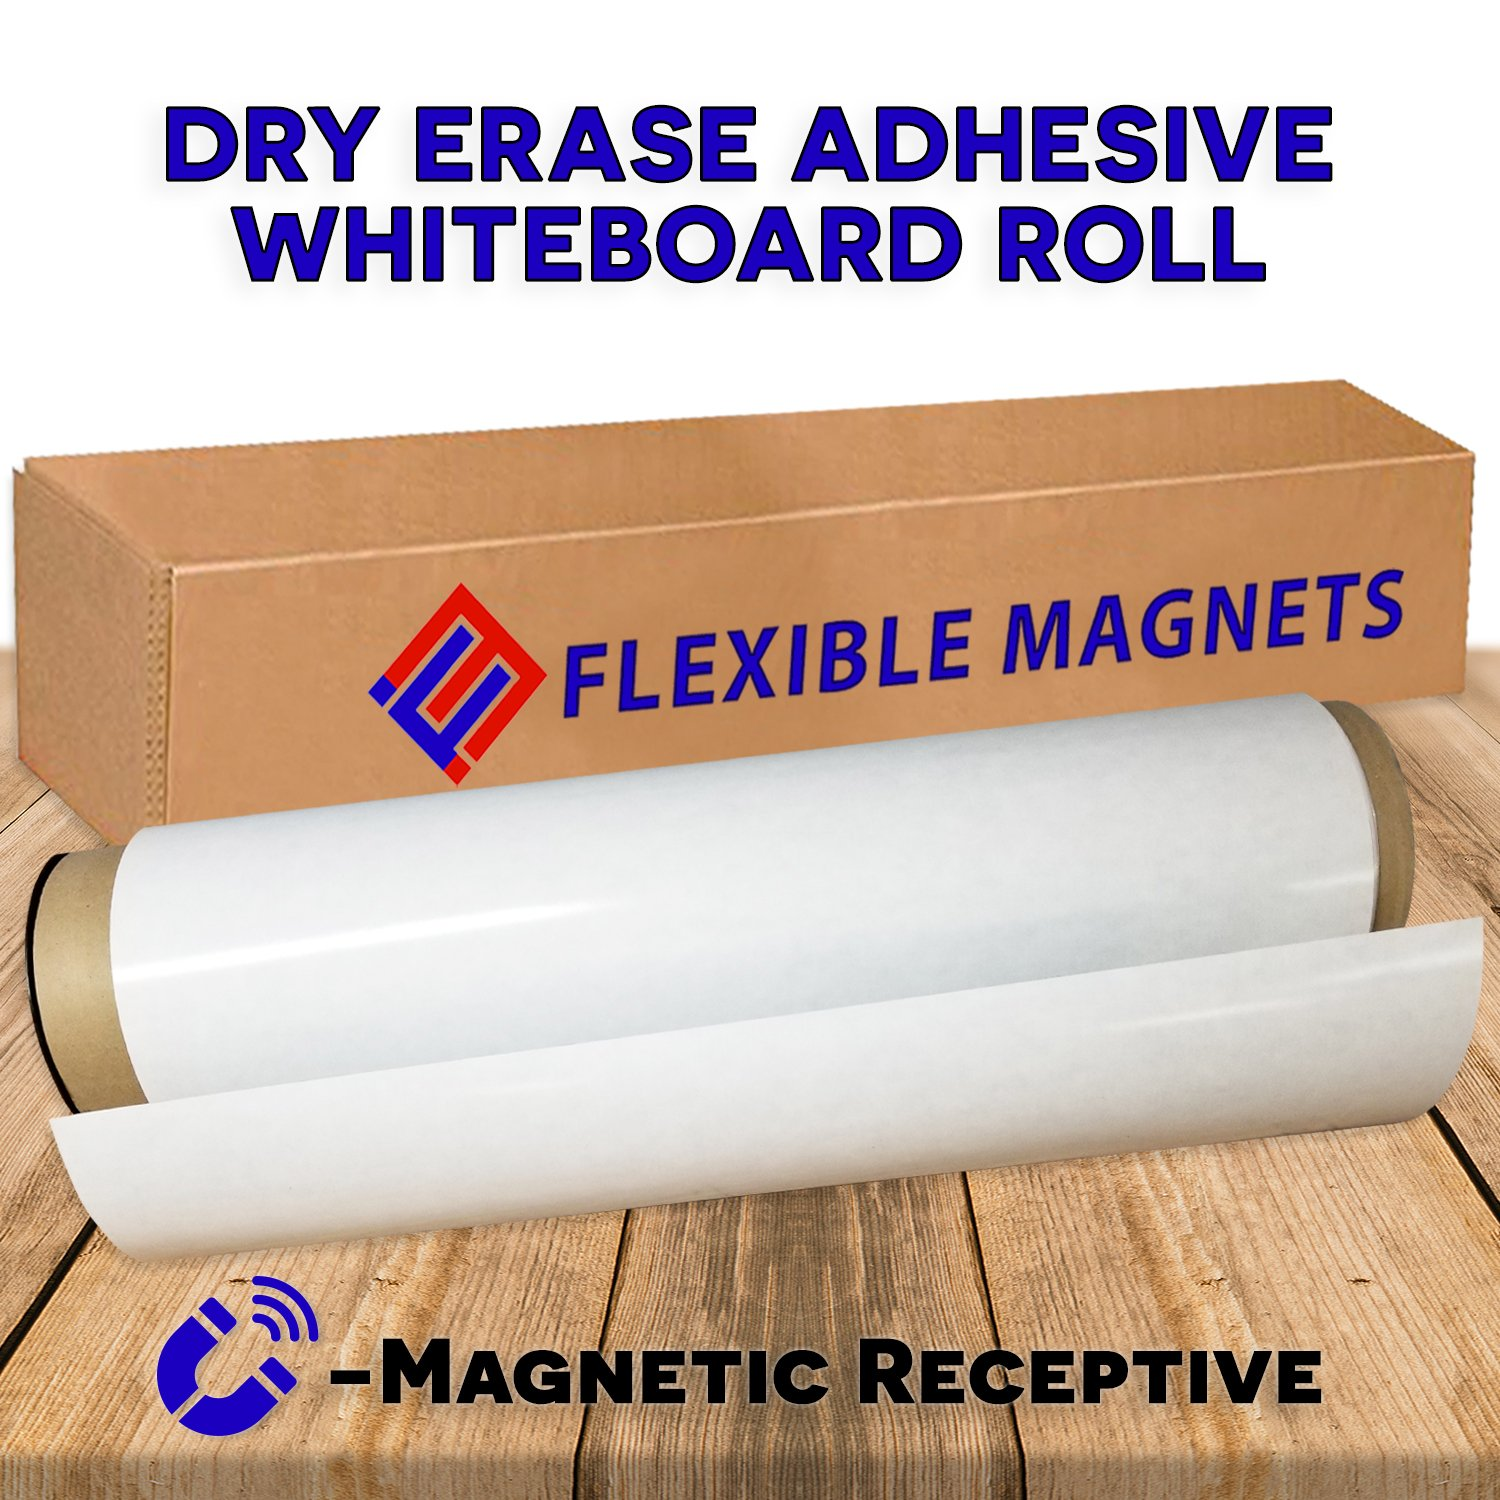 Dry Erase Board With Adhesive Back. Wall White Board Stick,Dry Erase Wall Decal Paper for Kids Education, DIY, Work, School, Home, Office- Magnetic Receptive (2 ft x 1ft)